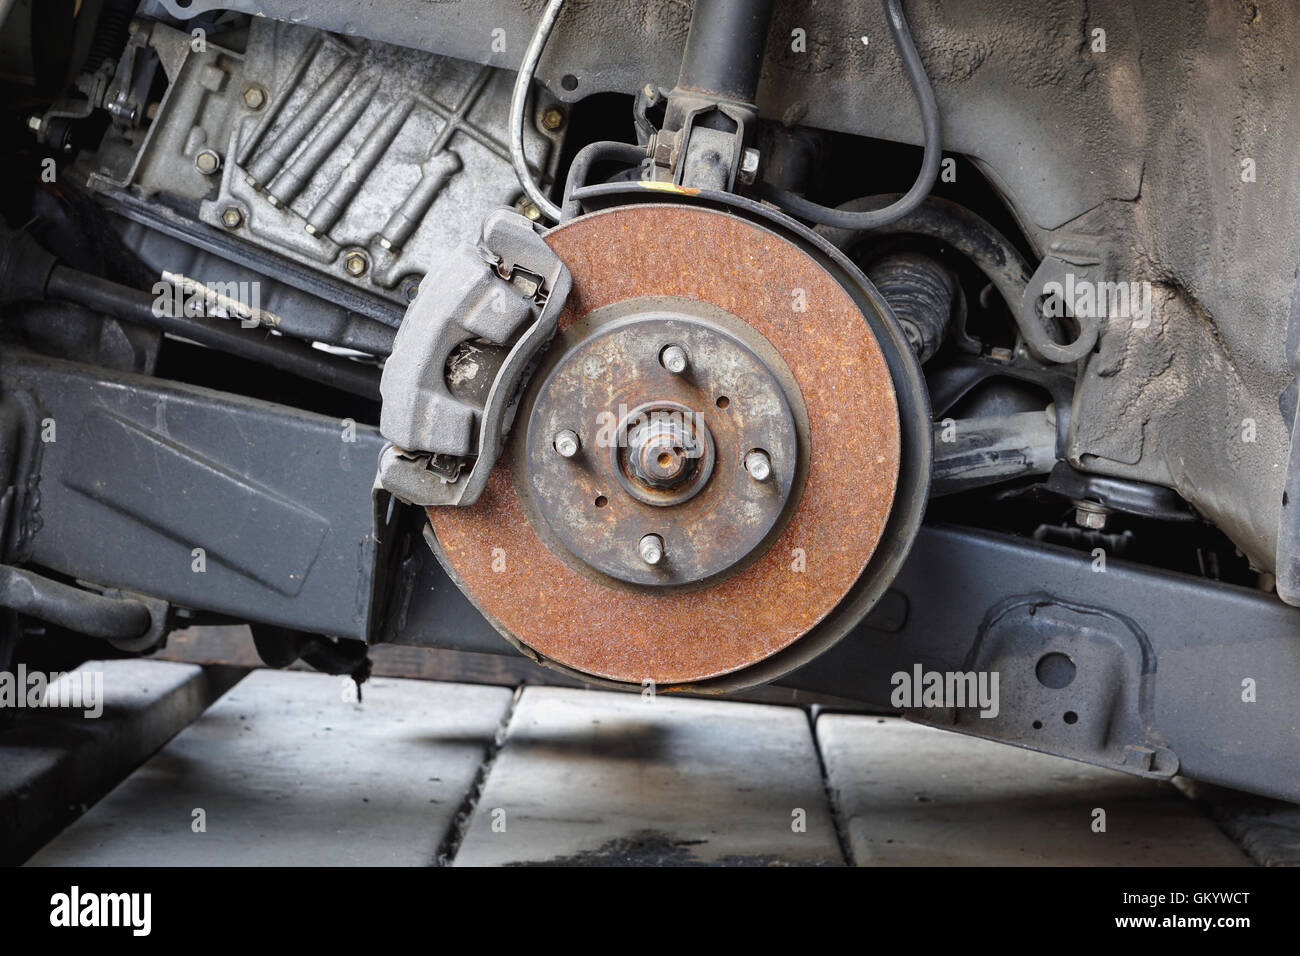 Old and rusty car disc brake and caliper - Stock Image